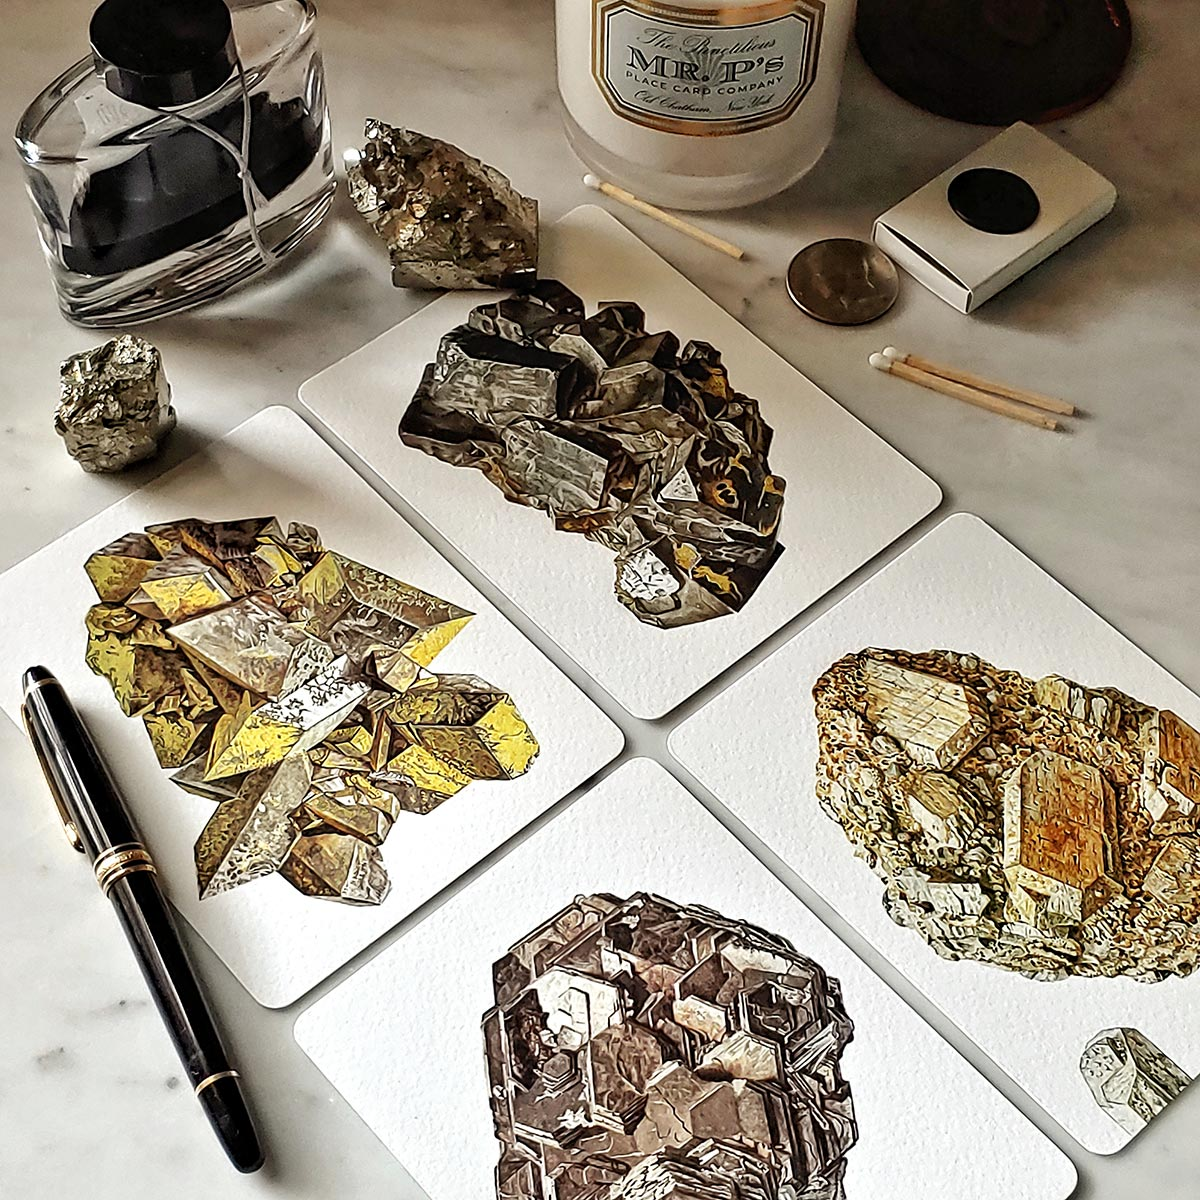 The Punctilious Mr. P's 'Minerals No. 2' note card set on marble ledge with crystals on top showing all 4 note cards